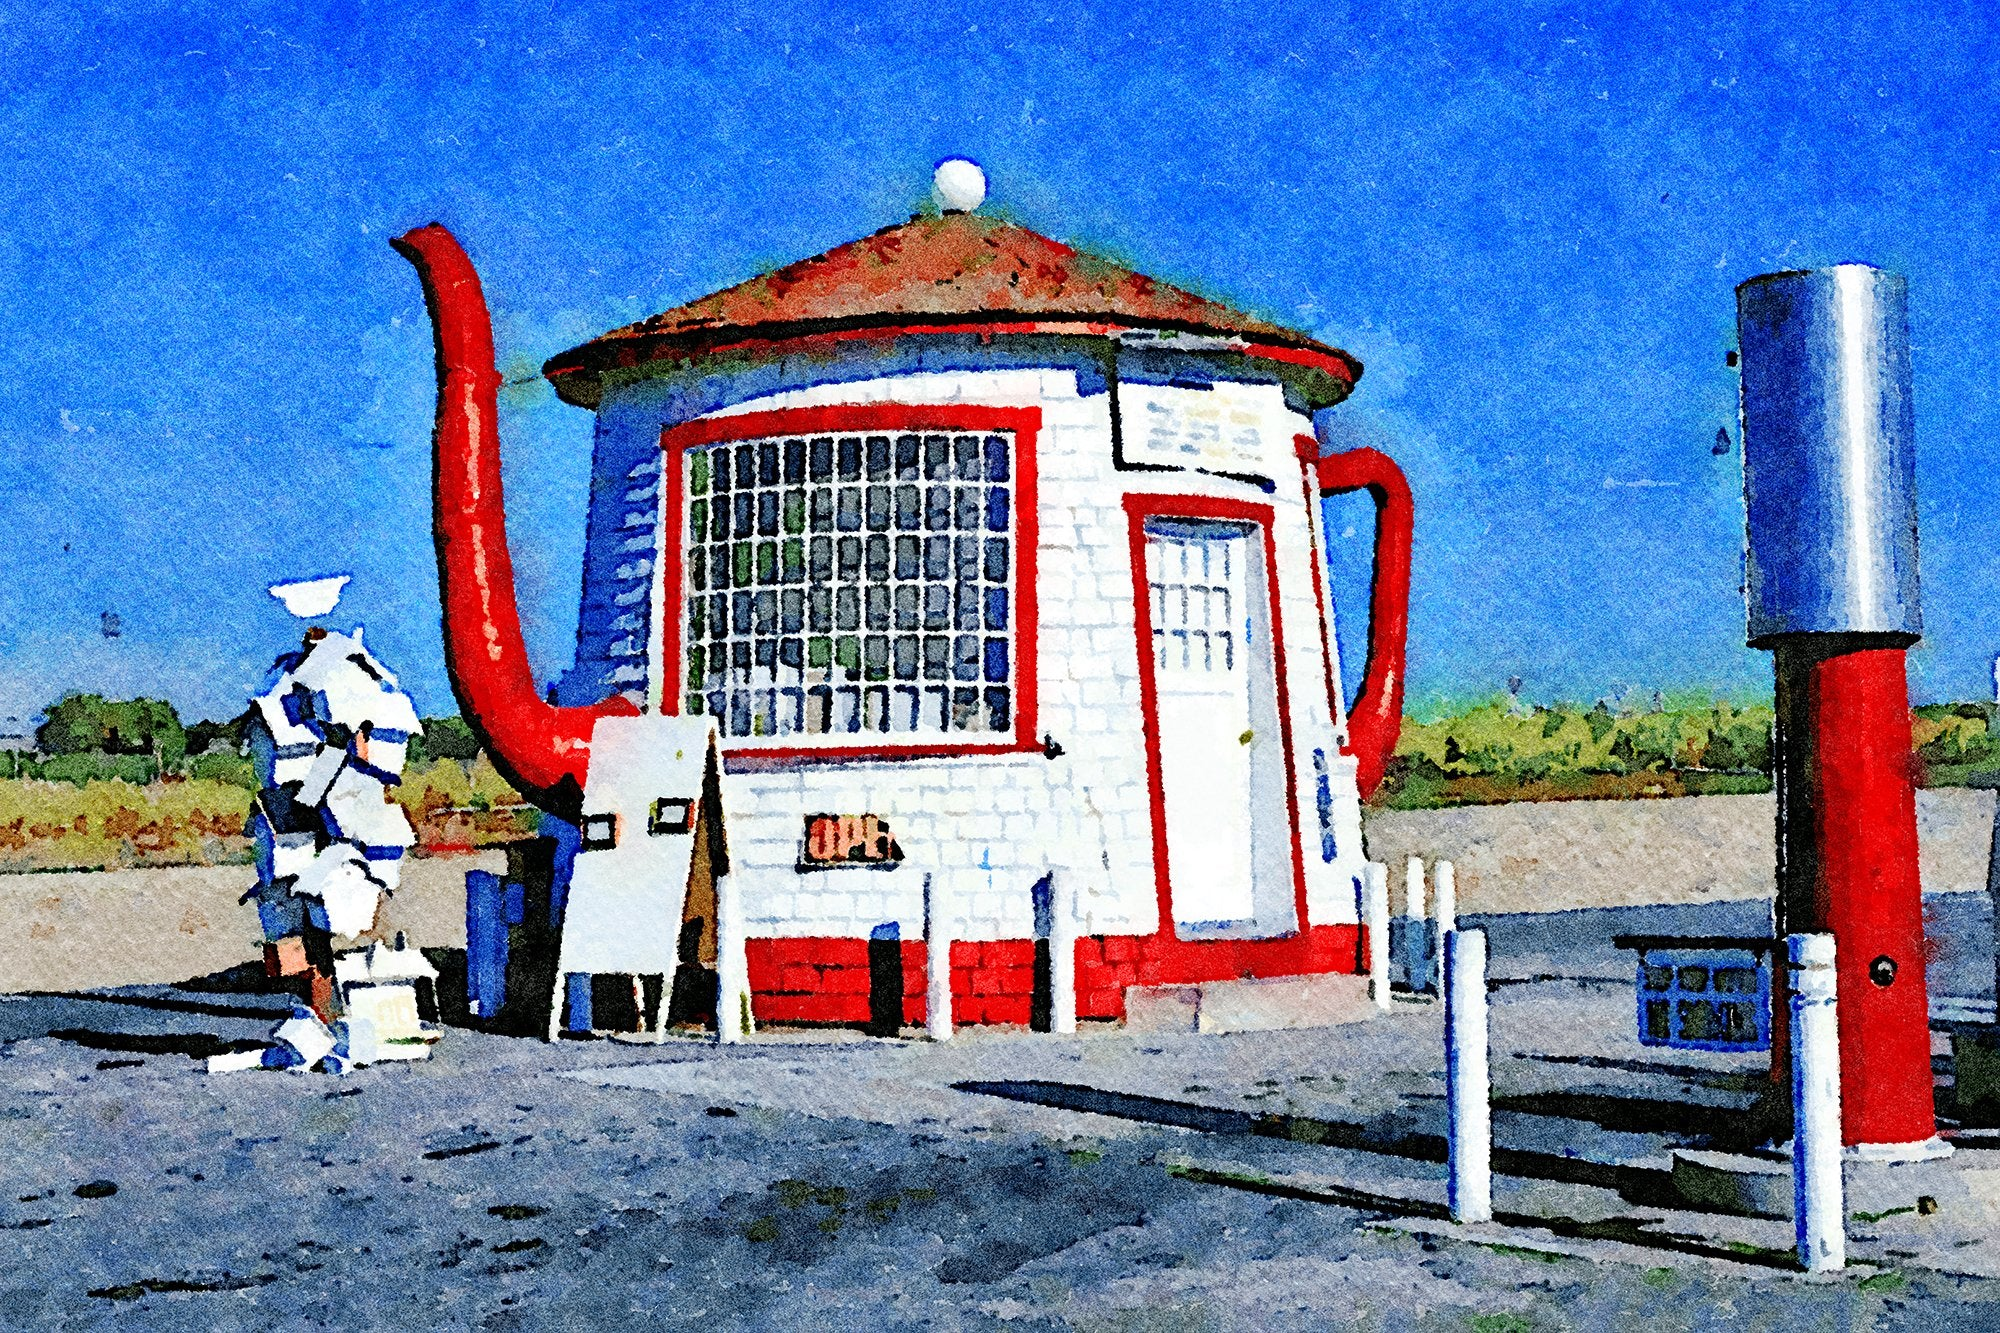 Teapot Dome Gas Station, Zillah, Washington, Reworked, Series 1